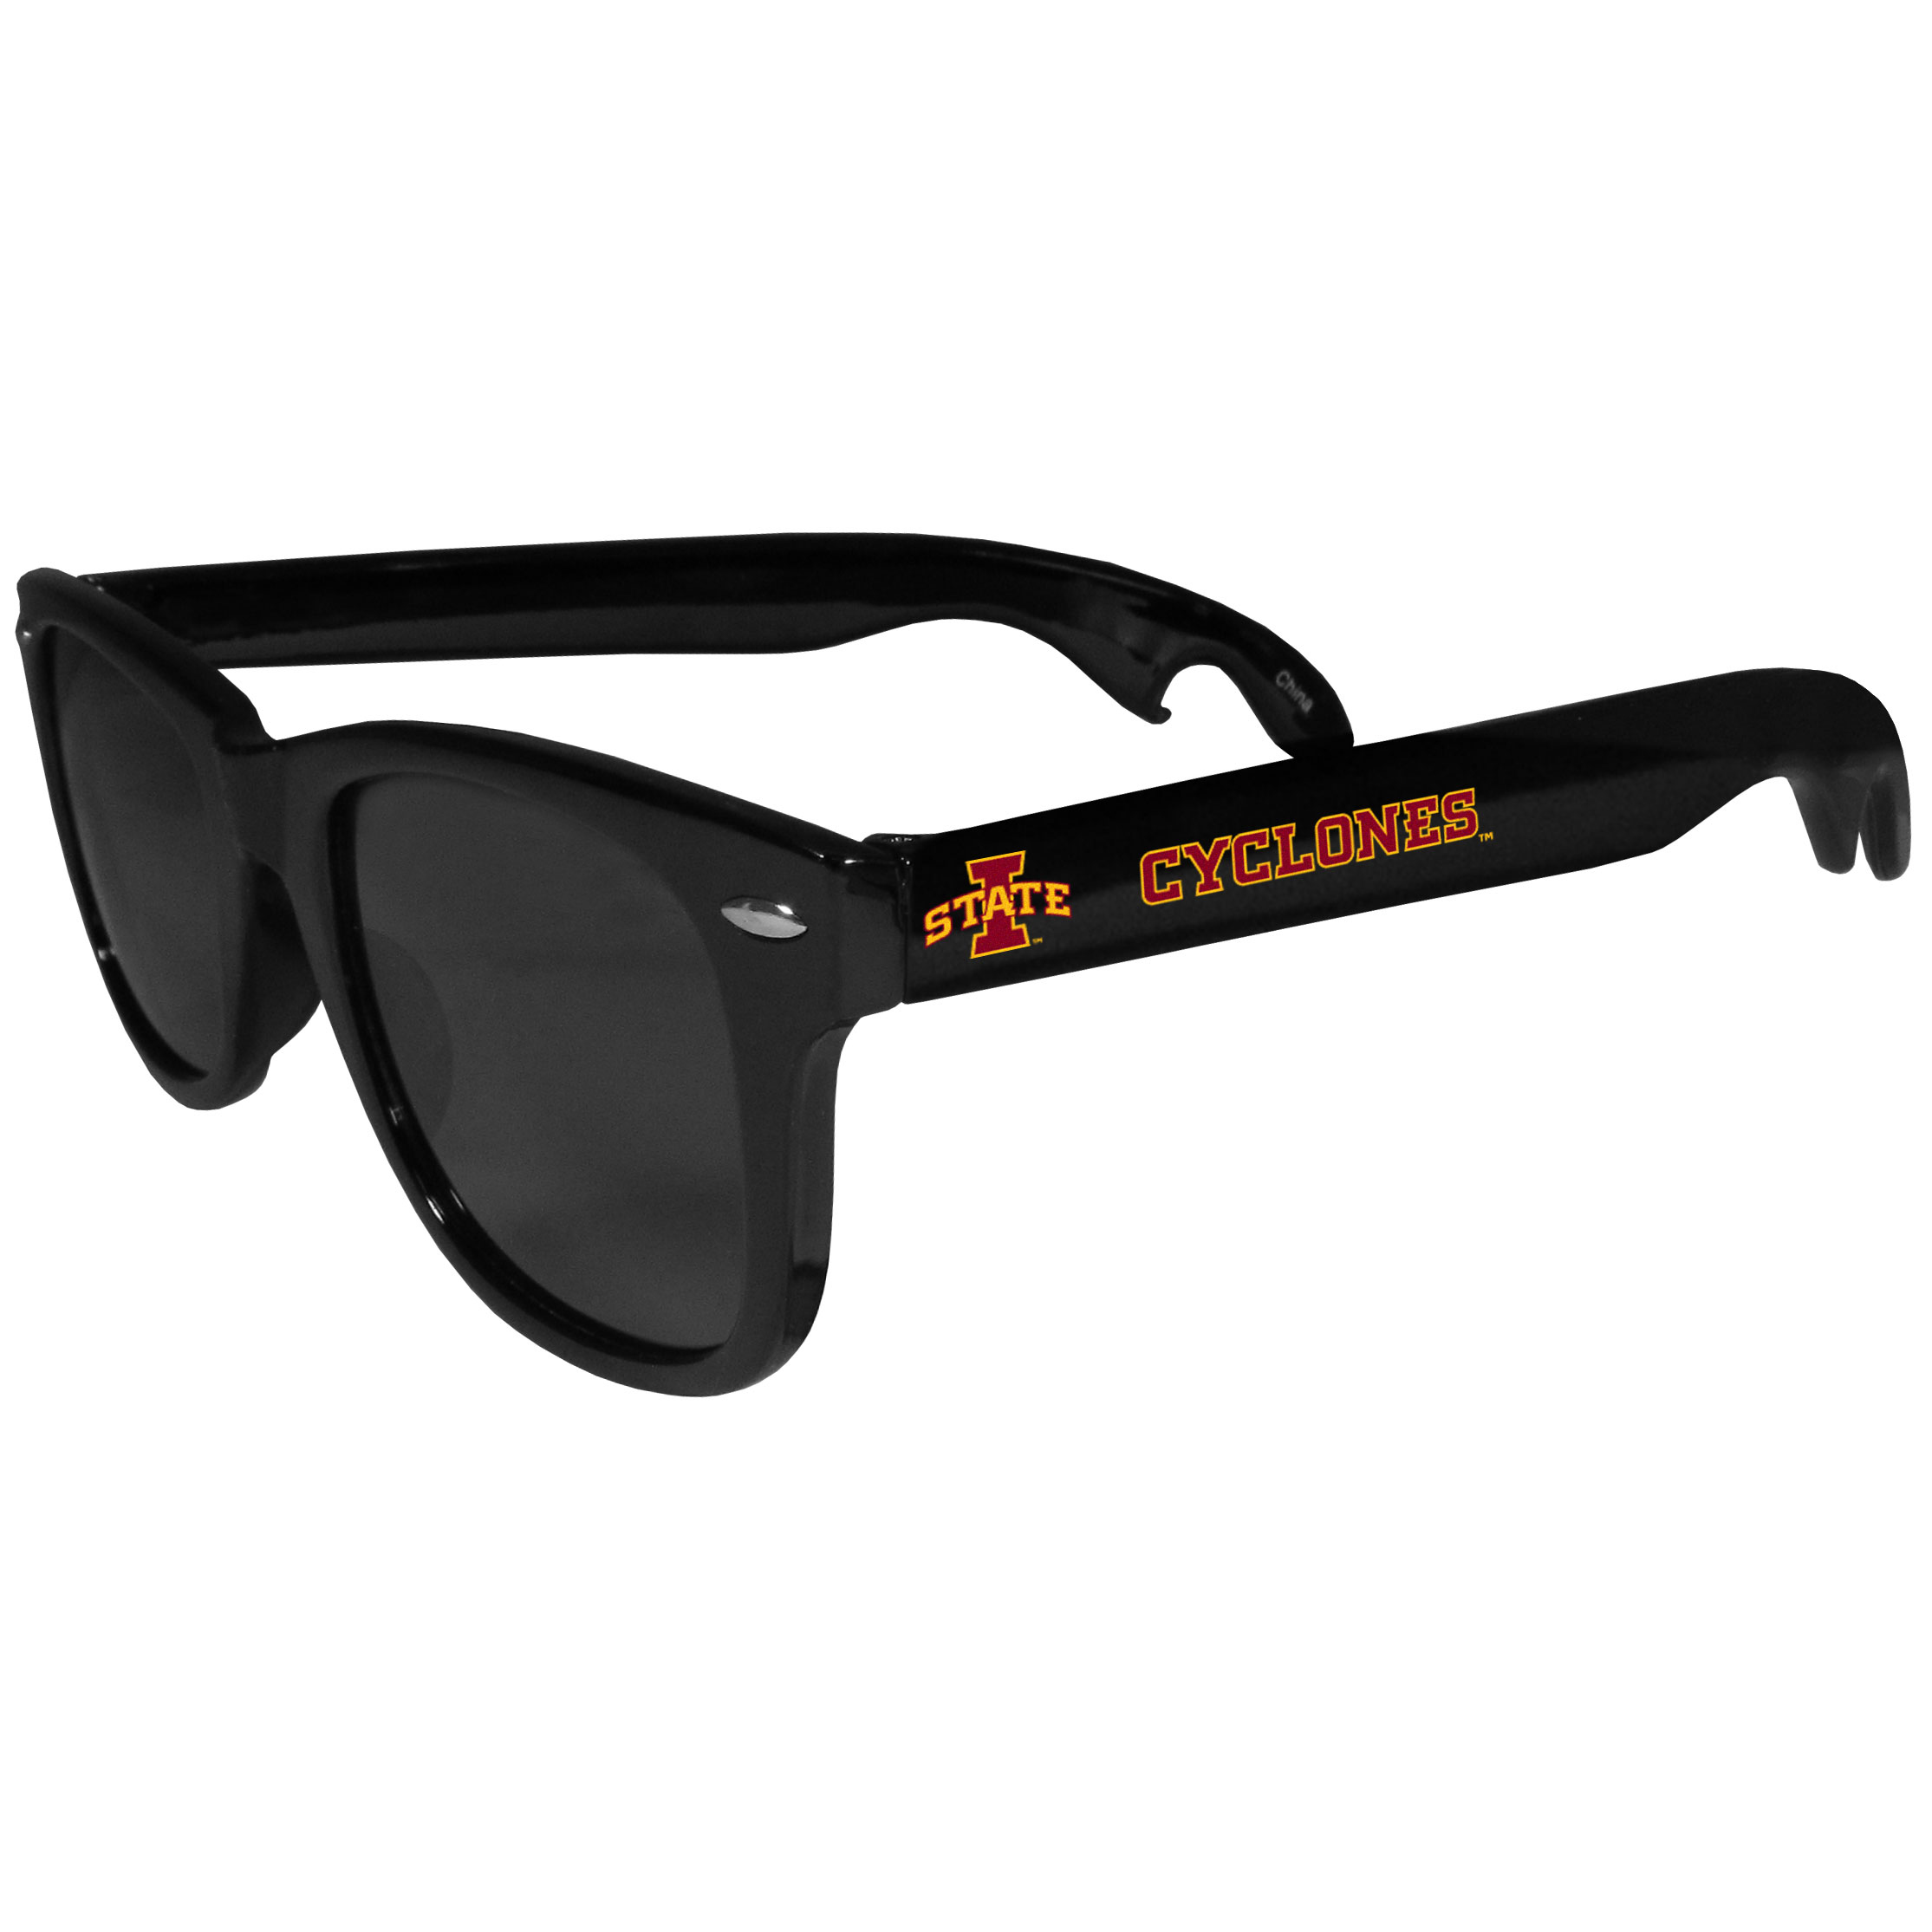 Iowa St. Cyclones Beachfarer Bottle Opener Sunglasses - Seriously, these sunglasses open bottles! Keep the party going with these amazing Iowa St. Cyclones bottle opener sunglasses. The stylish retro frames feature team designs on the arms and functional bottle openers on the end of the arms. Whether you are at the beach or having a backyard BBQ on game day, these shades will keep your eyes protected with 100% UVA/UVB protection and keep you hydrated with the handy bottle opener arms.